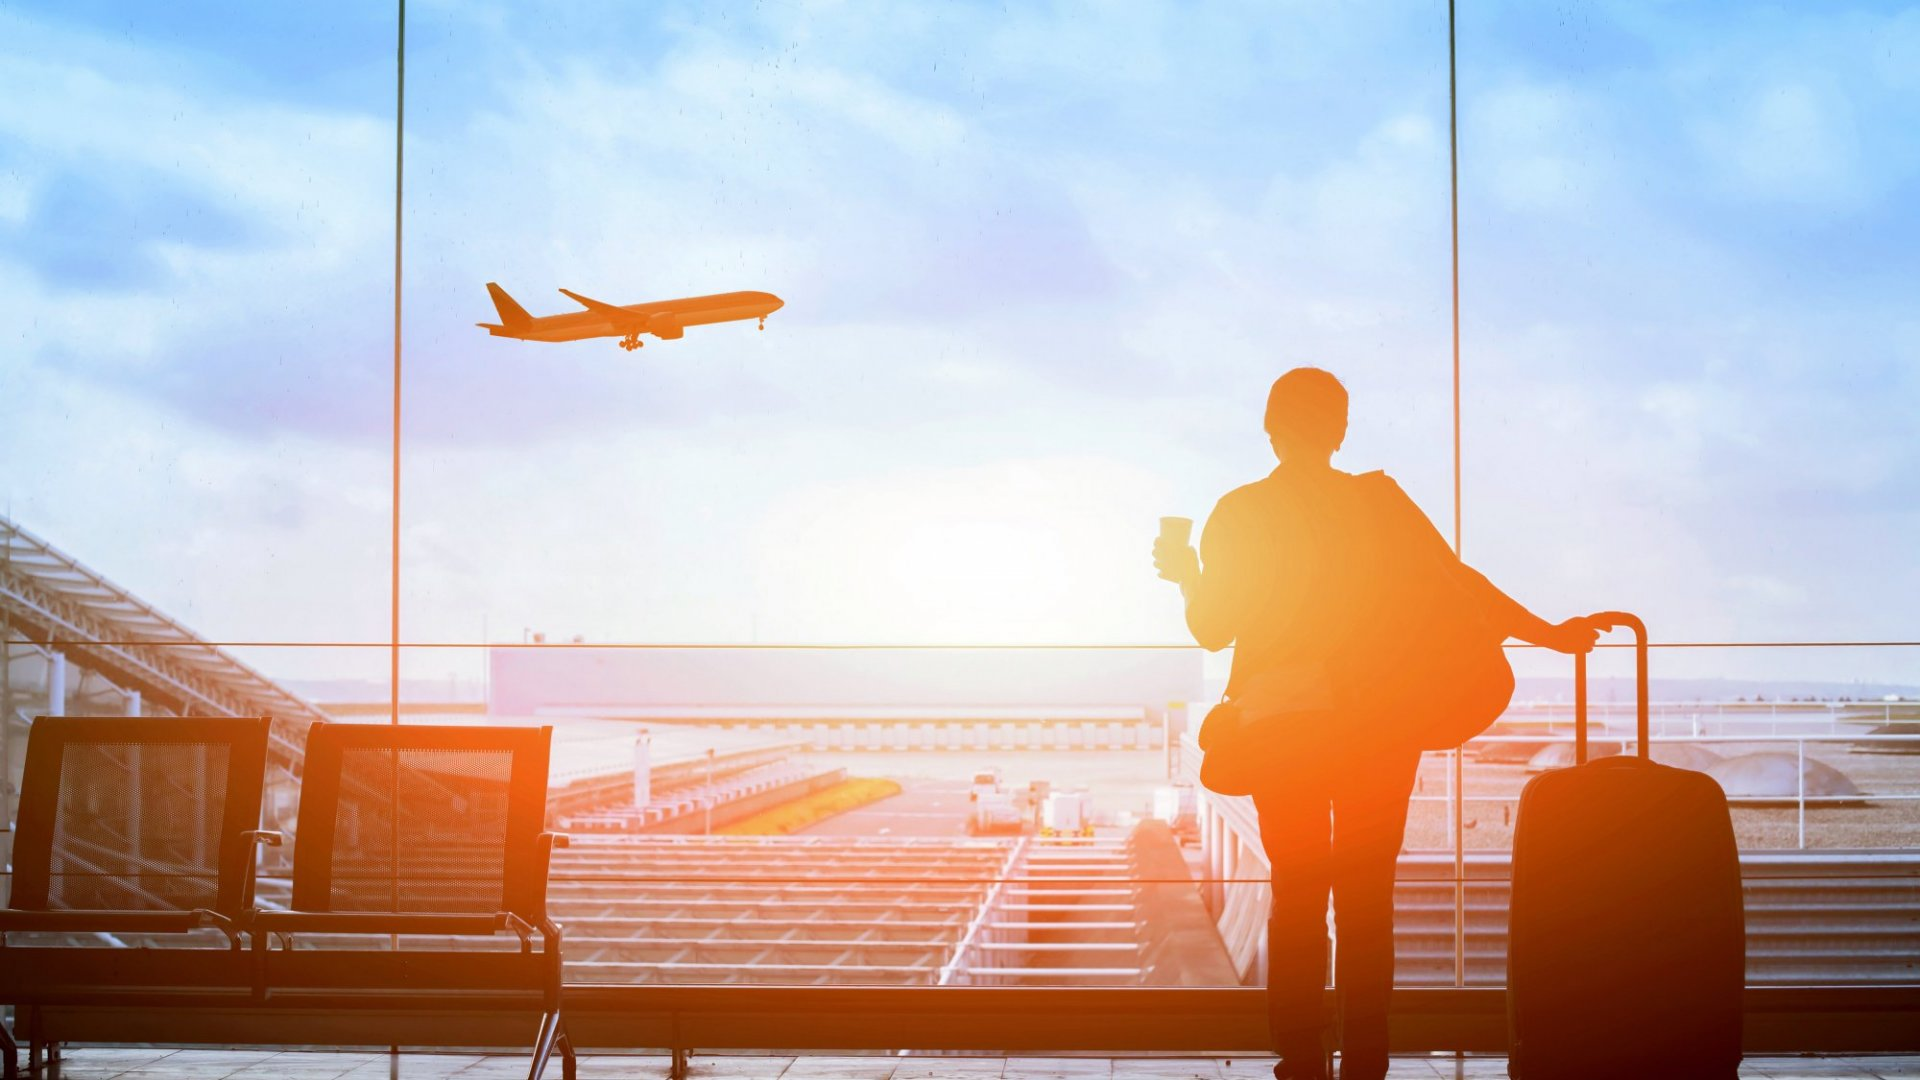 Four Free Hacks to Make Your Travel More Comfortable